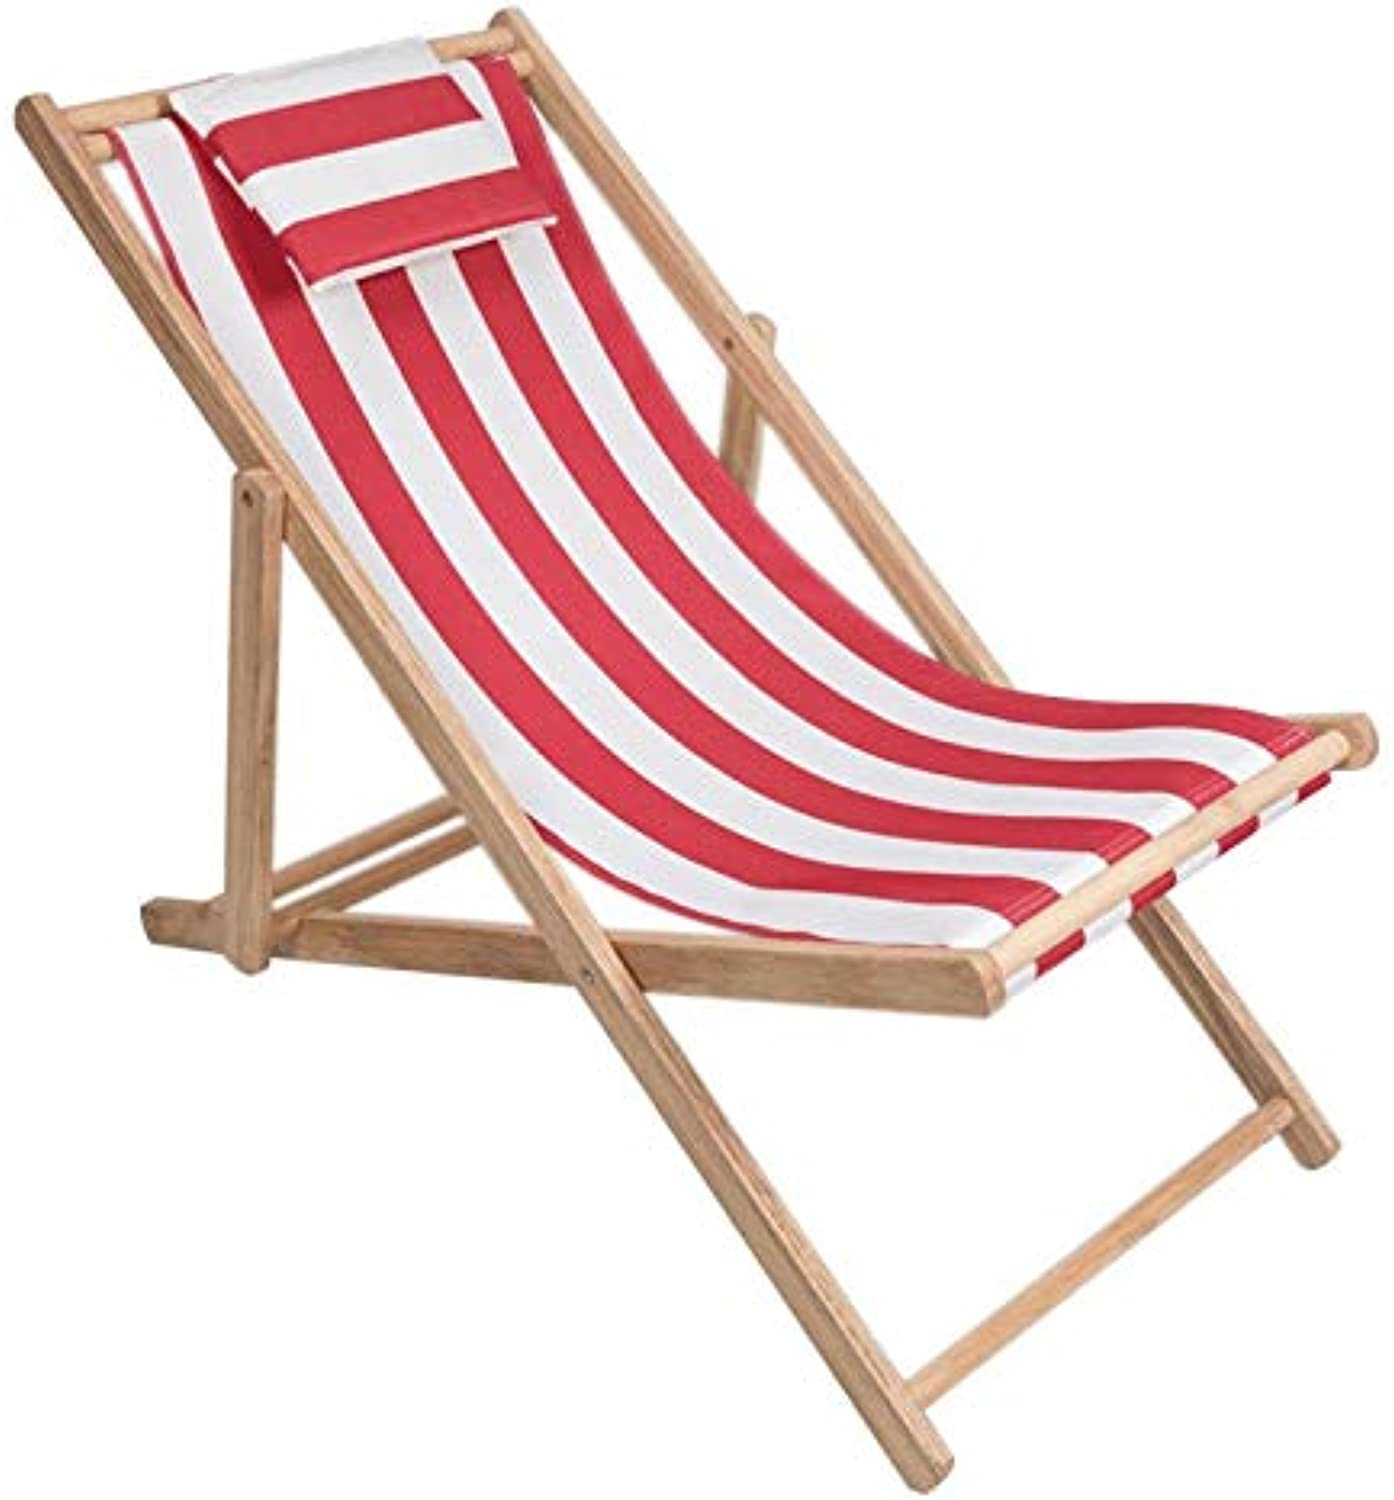 Wooden Lounge Chair Household Indoor and Outdoor Terrace Lazy Chair Outdoor Deck Lounge Chair (color   Red)